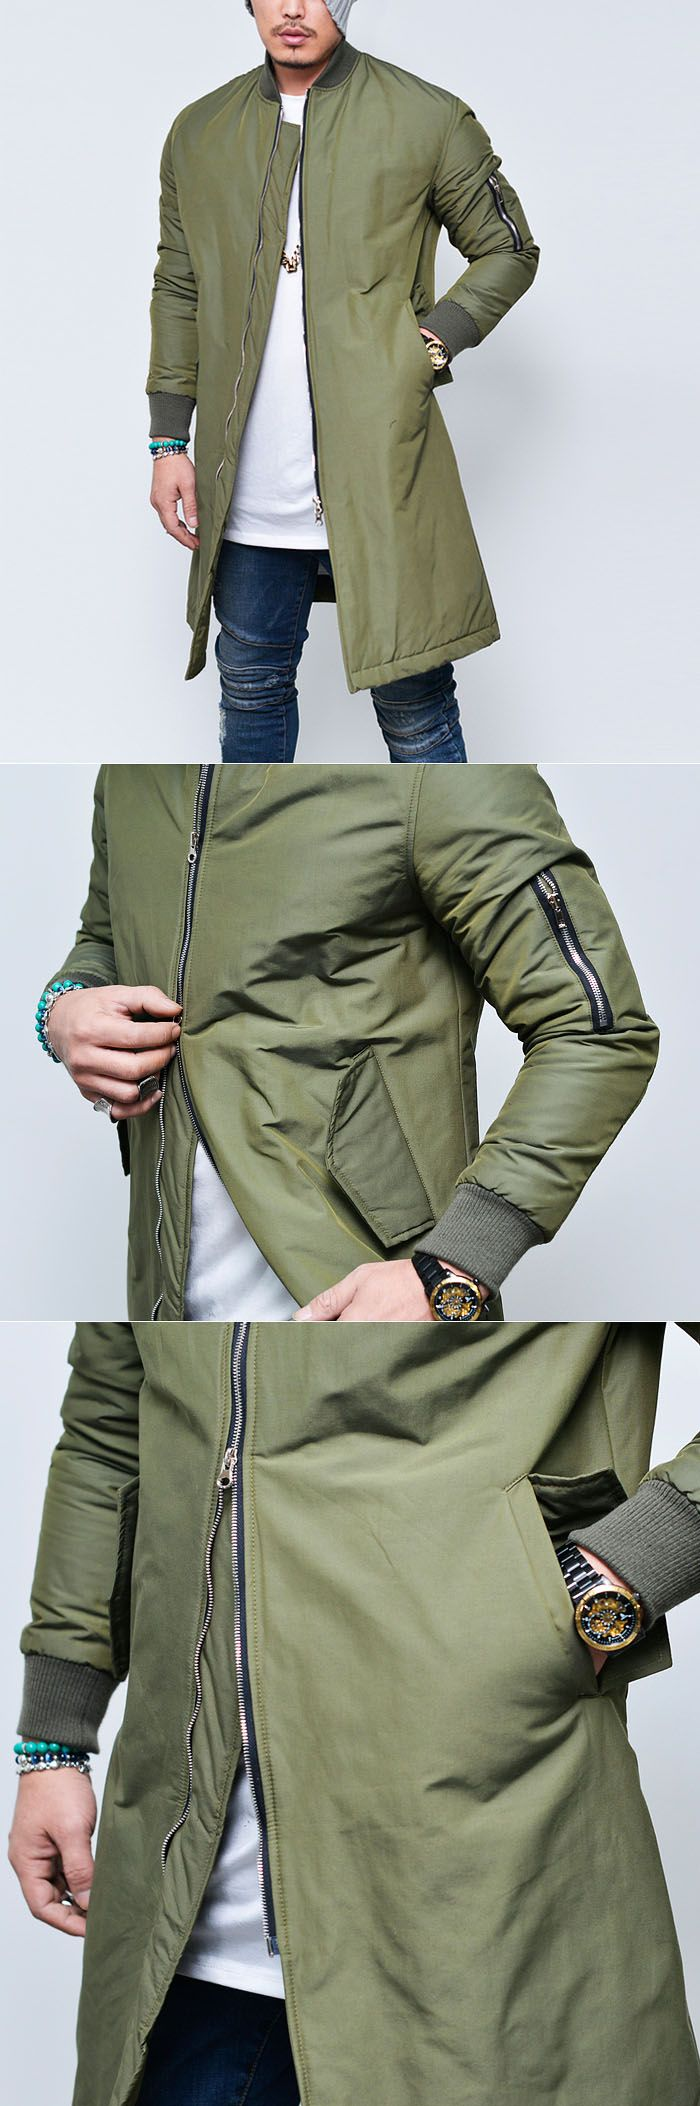 Outerwear :: Jackets :: Cargo Pocket Long Flight Bomber-Jacket 114 - Mens Fashion Clothing For An Attractive Guy Look